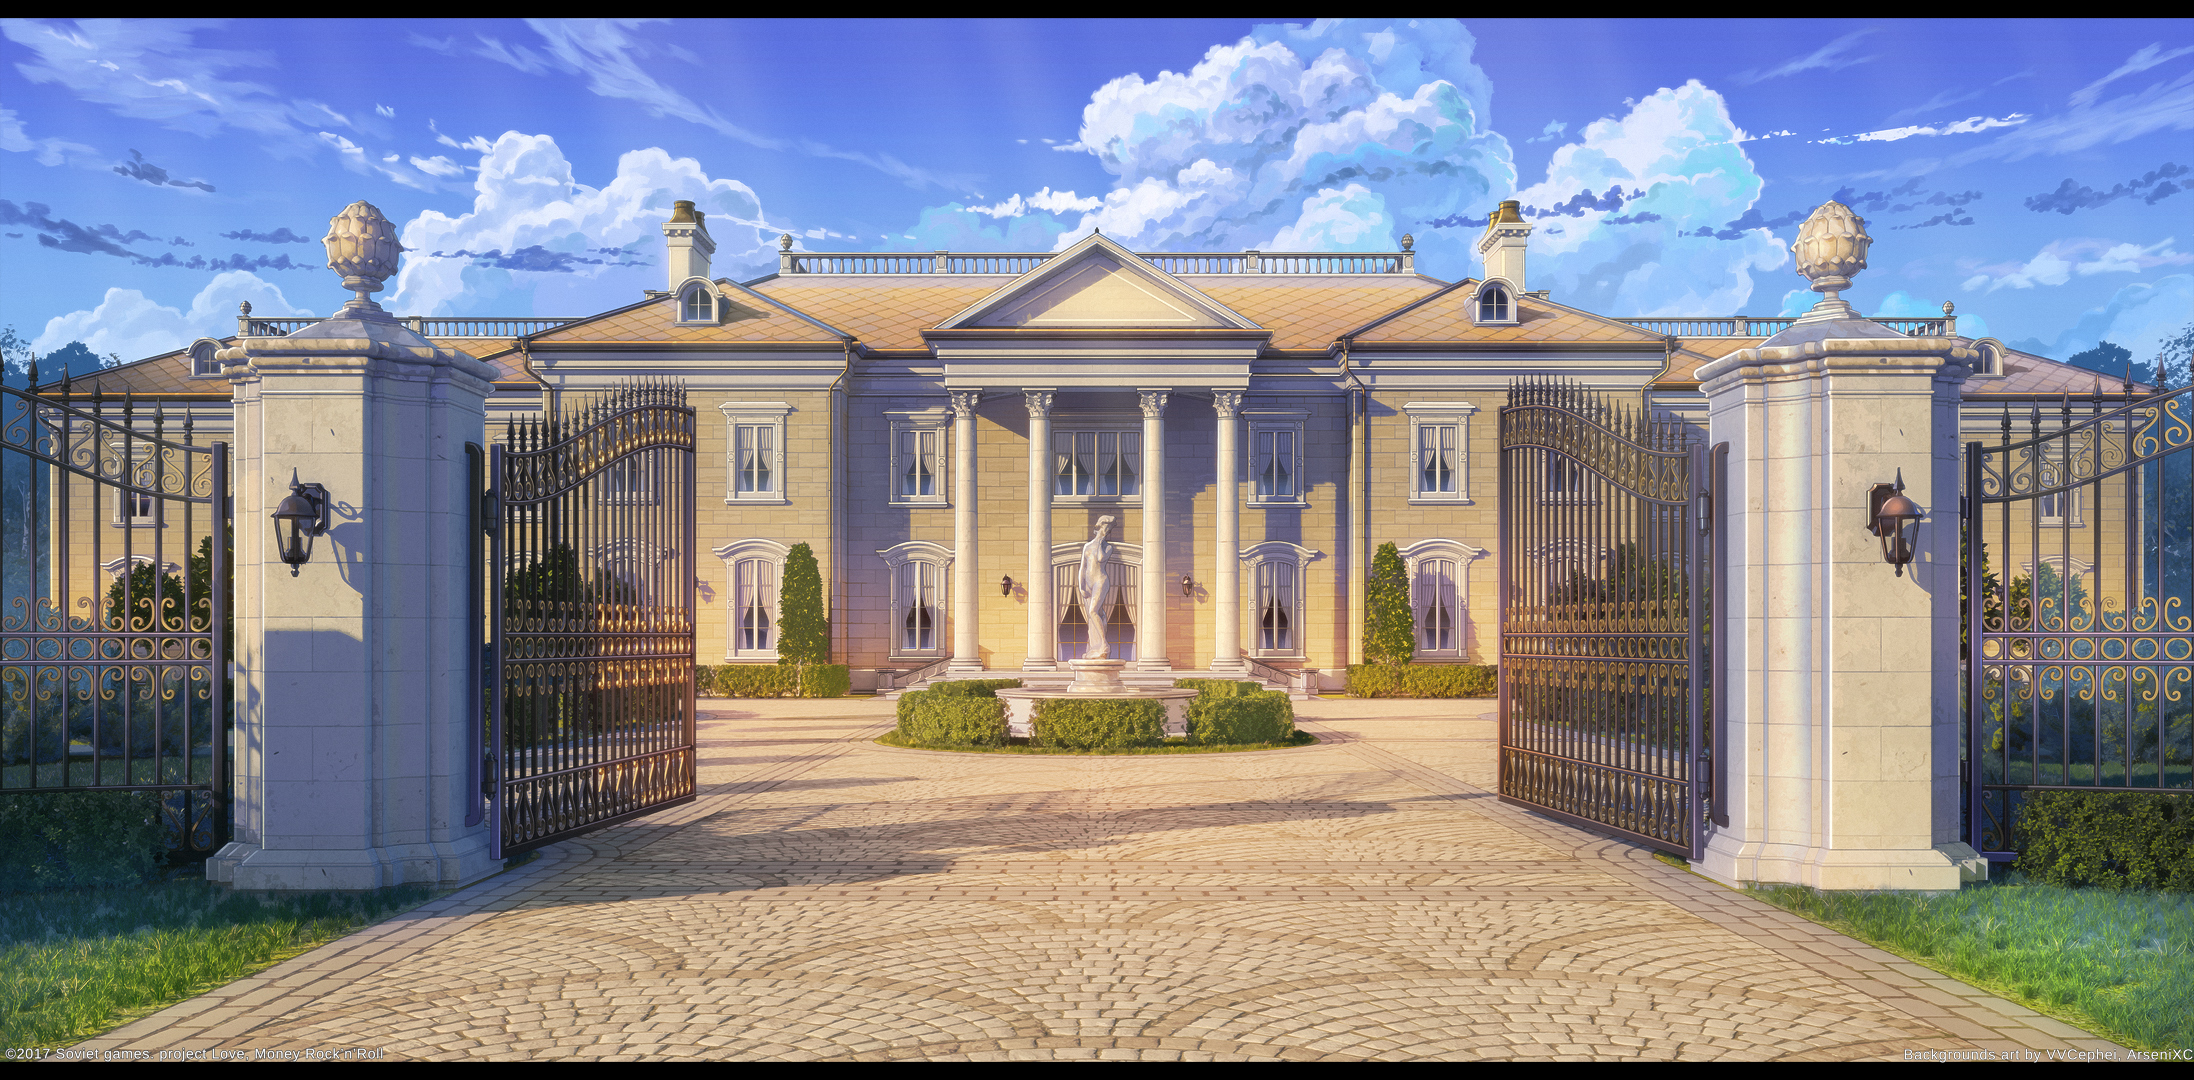 ellie_mansion_by_arsenixc-dbrgcbp.jpg